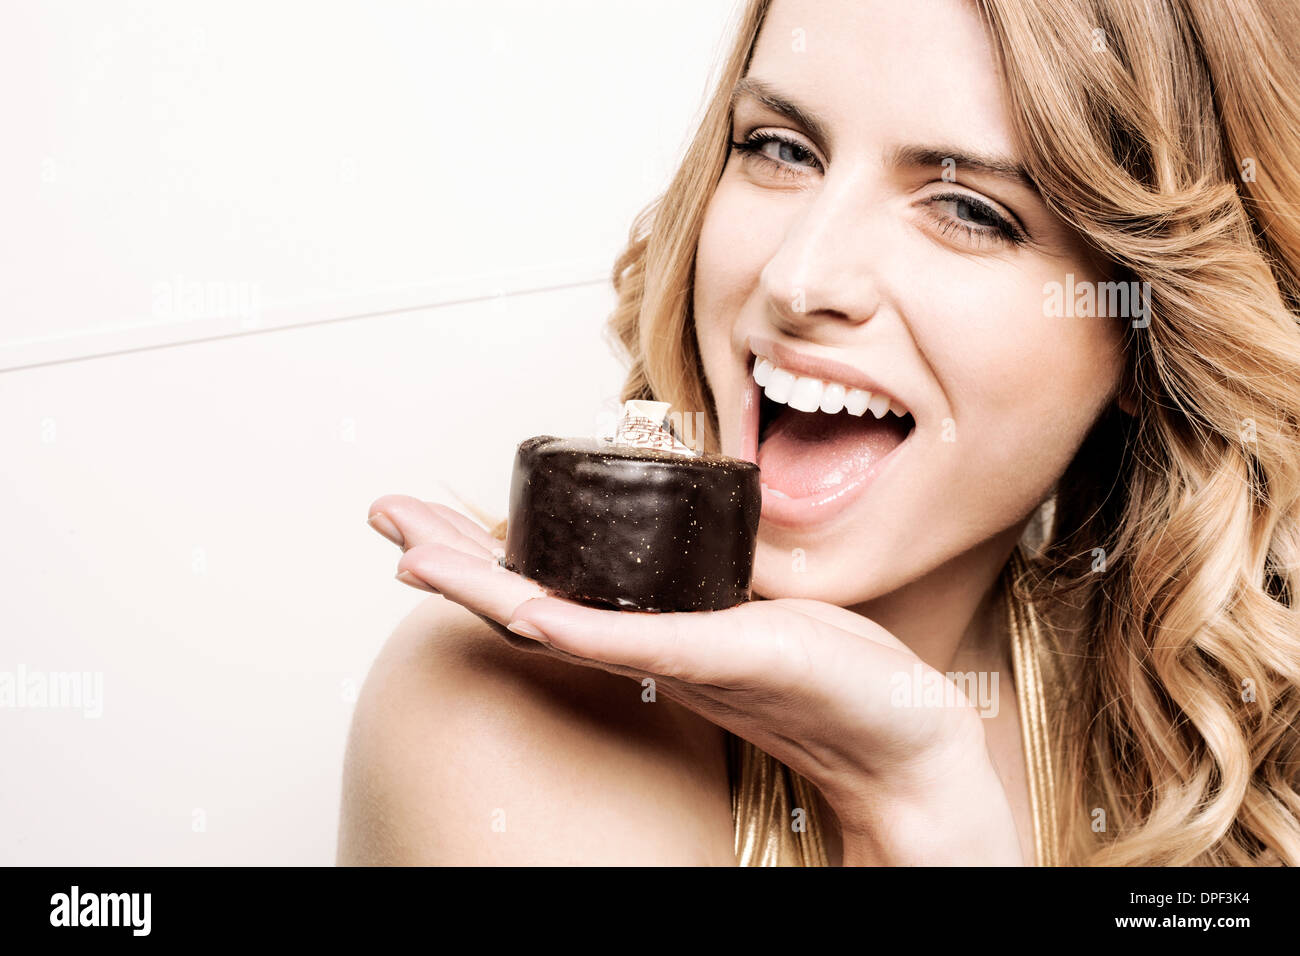 Model holding cake to mouth - Stock Image